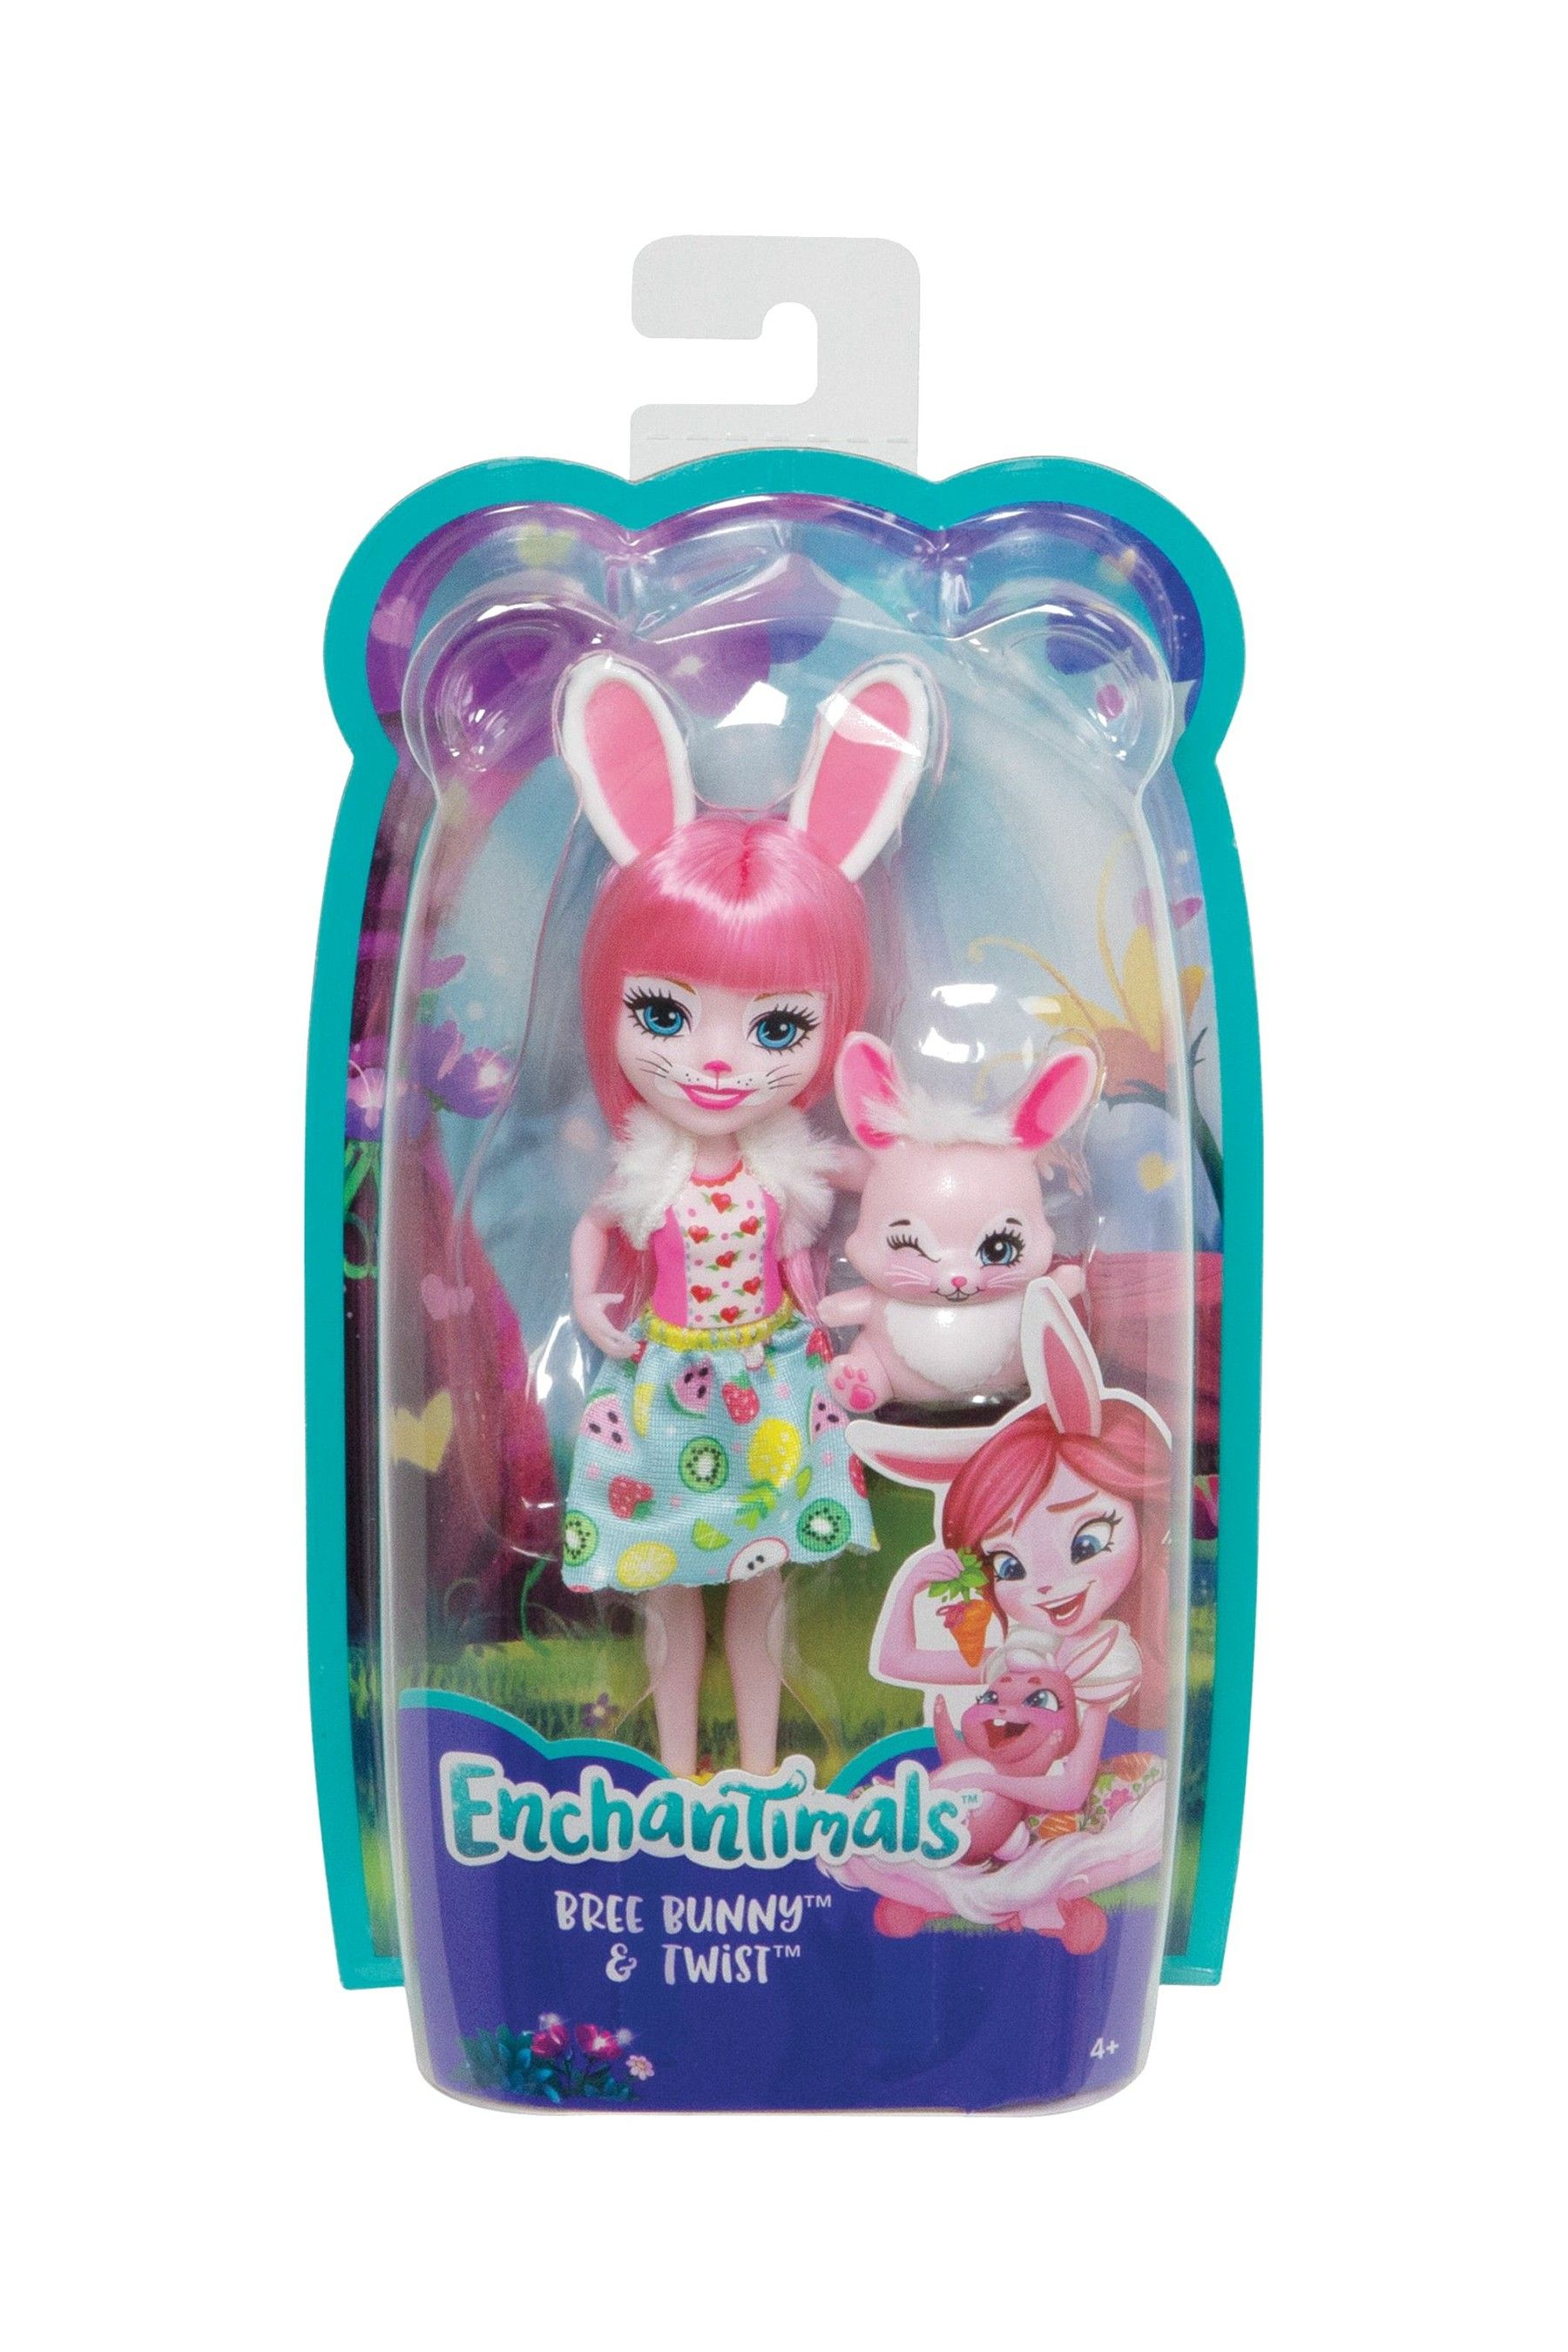 Girls Enchantimals Bree Bunny Doll 6 Inch And Twist Animal Figure Pink Paws Animal Figures Bunny Doll